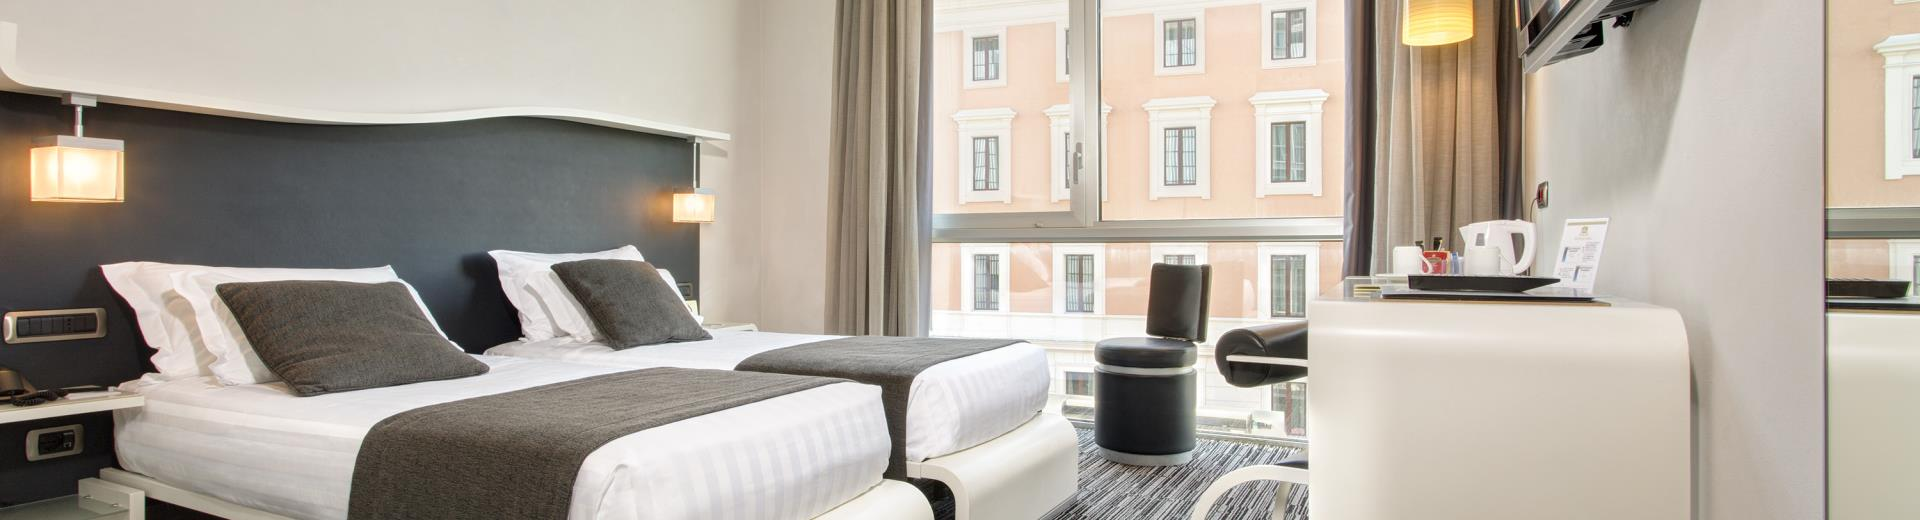 Comfort twin room Hotel Royal Santina Rome 4 star hotel